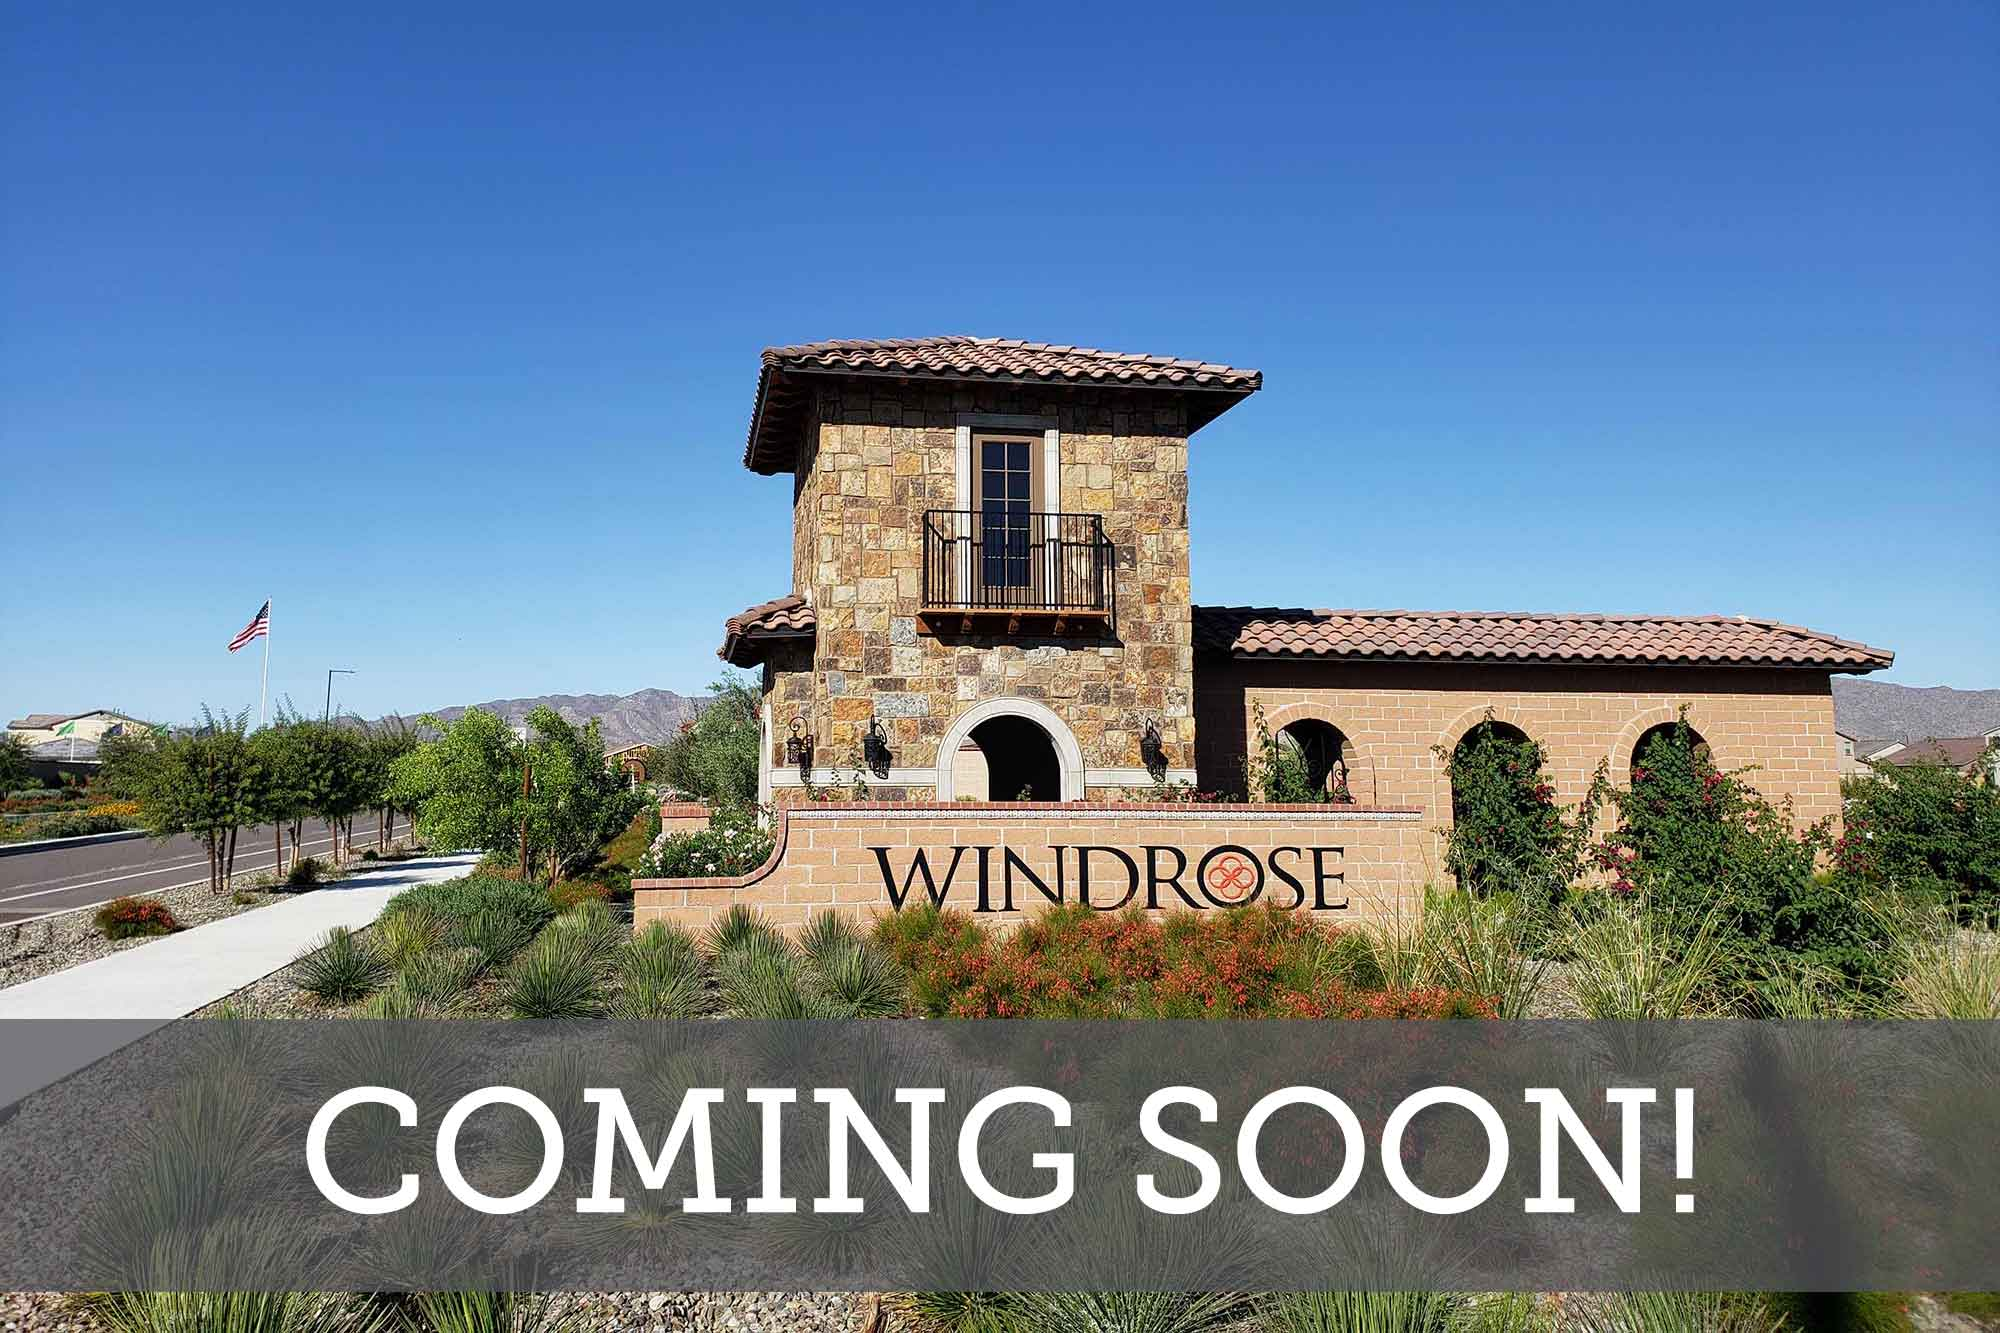 Ironwing at Windrose - Coming Soon